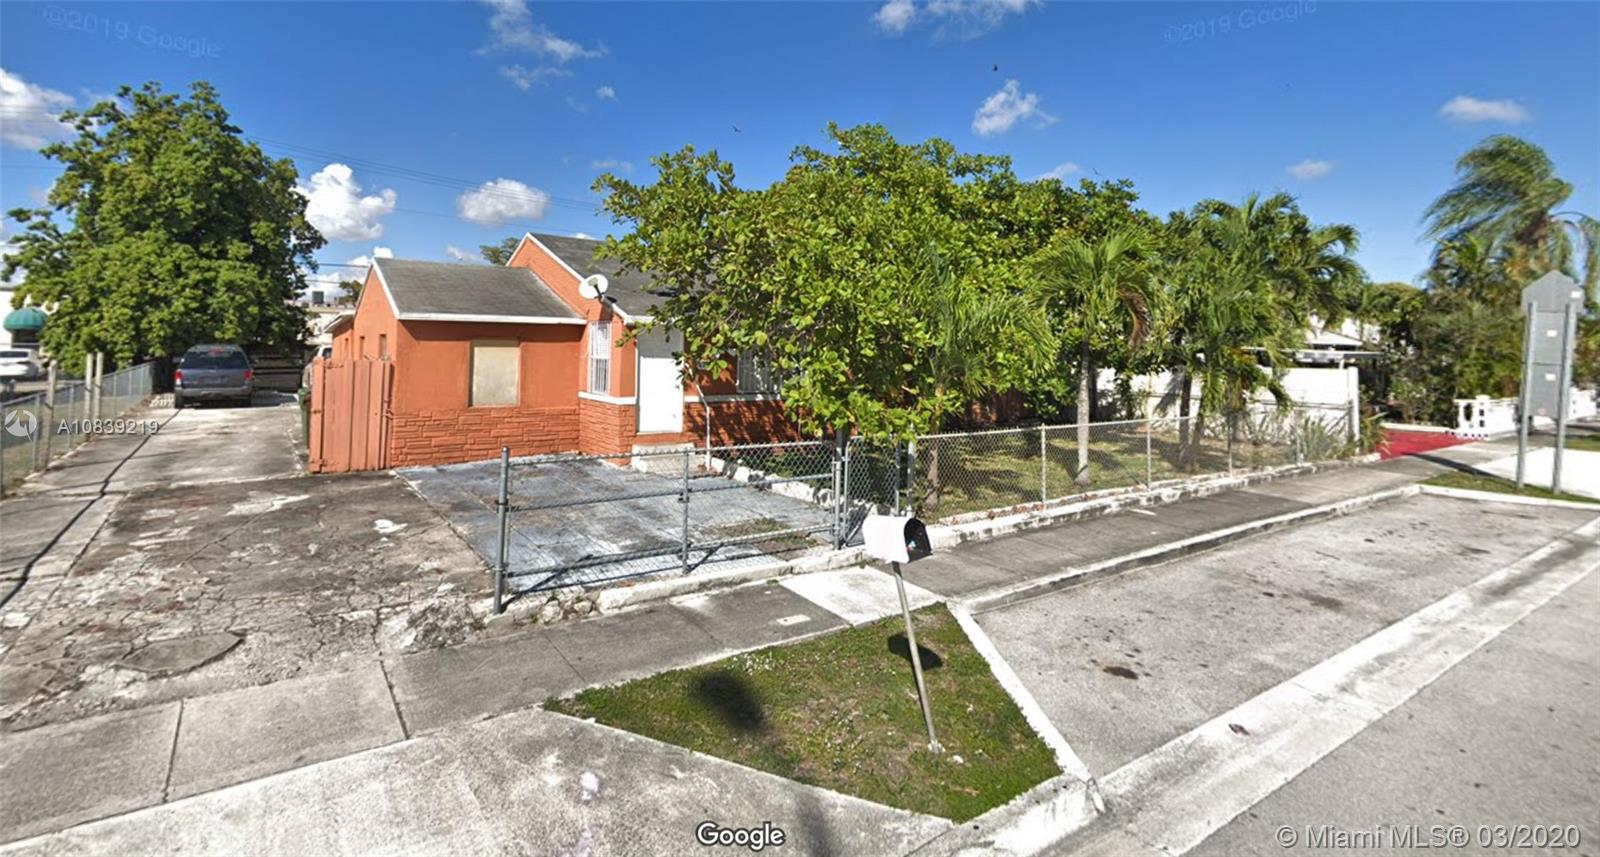 621 E 8th St, Hialeah, Florida 33010, 3 Bedrooms Bedrooms, ,1 BathroomBathrooms,Residential,For Sale,621 E 8th St,A10839219